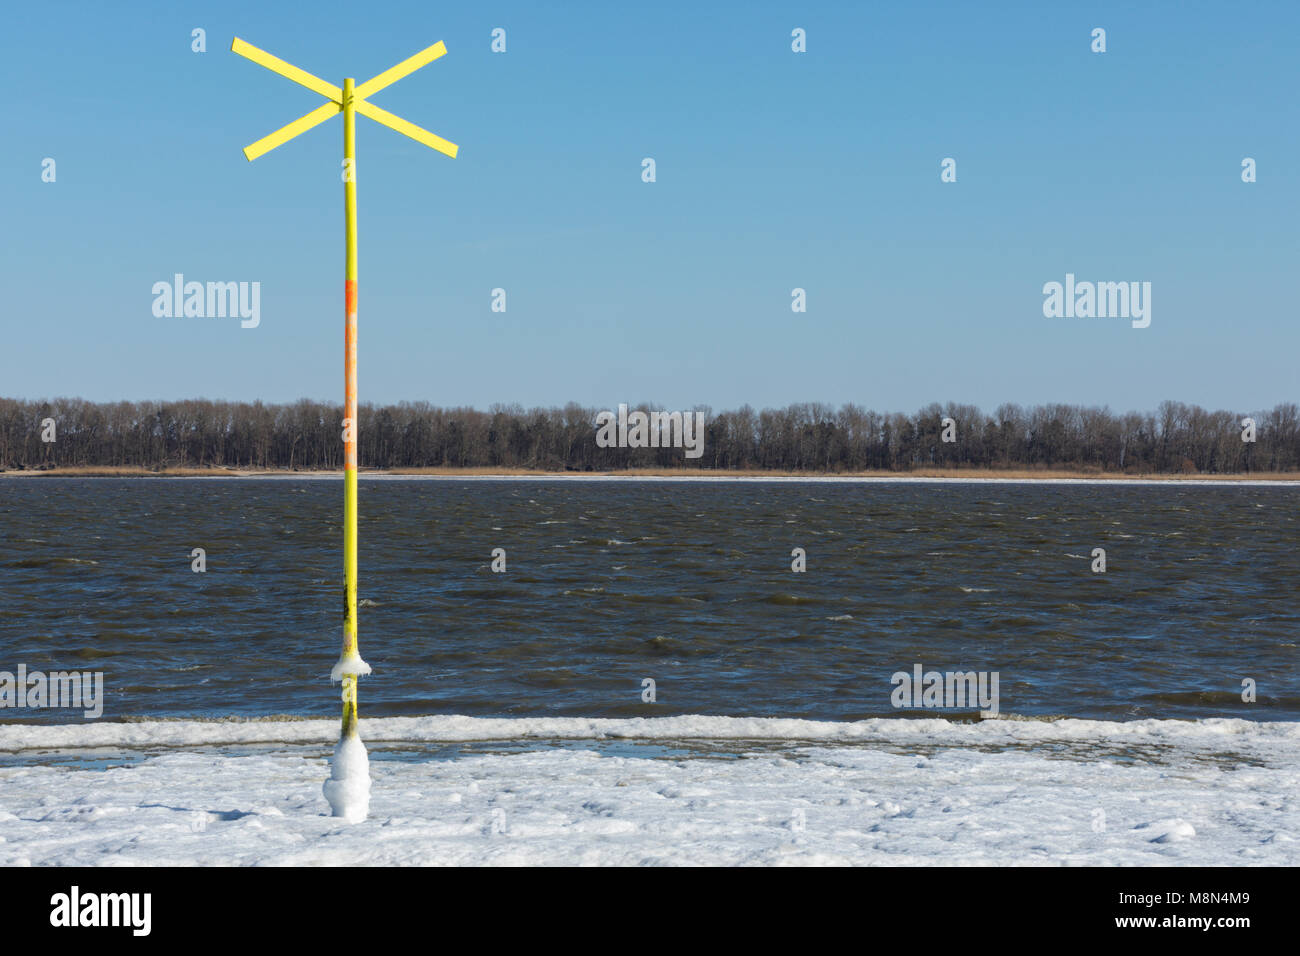 Frost warning stock photos frost warning stock images alamy vibrant yellow shallow water warning sign in partially frozen elbe river stock image buycottarizona Images